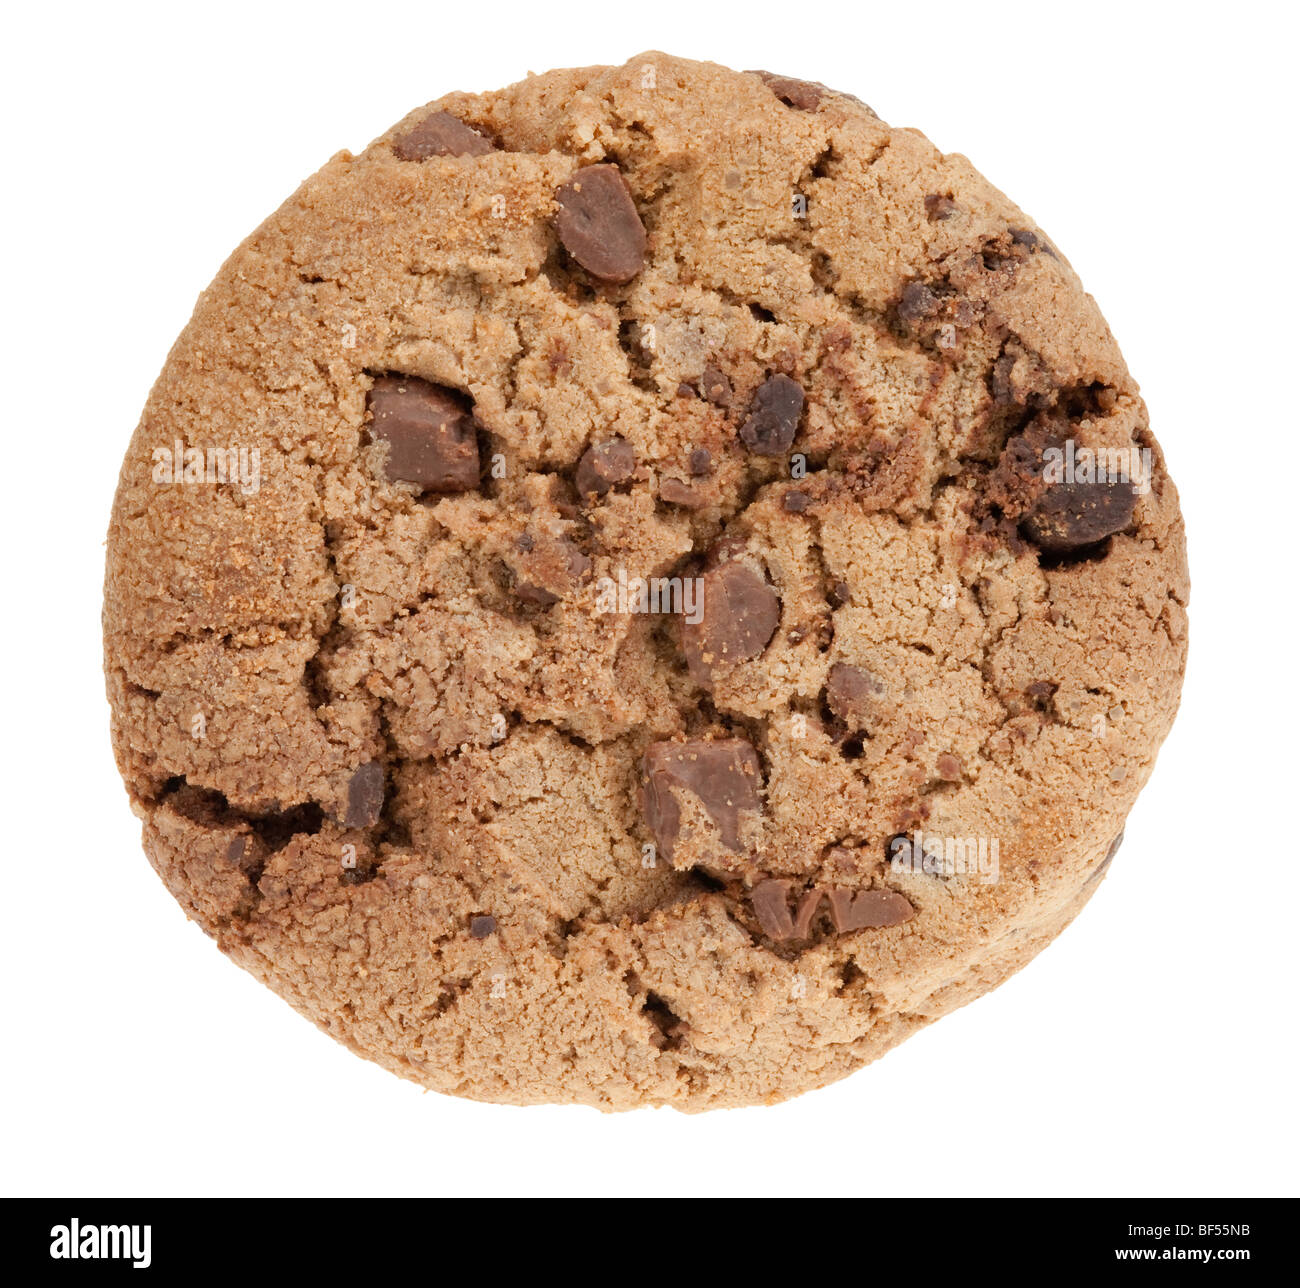 delicious chocolate chip cookie isolated on a white background - Stock Image